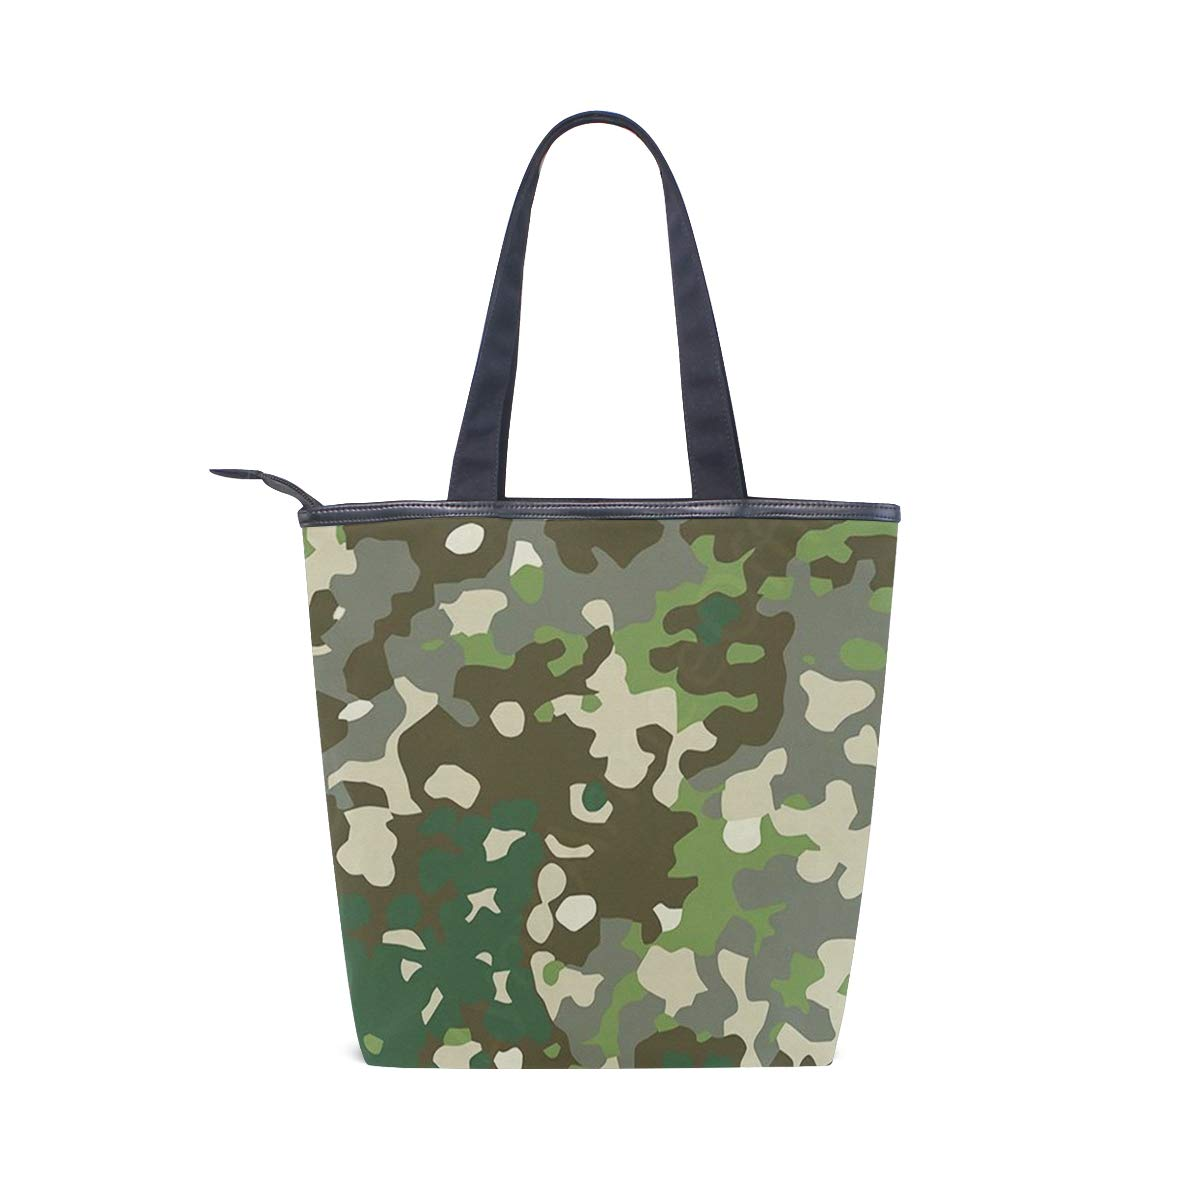 65bc0eb1c5d0 Amazon.com  Camouflage Canvas Tote Handle Bag Tote bags Shopping Bag Large  Travel Bag With Zipper Shoulder Strap Reusable For Shopping and Decorating   Shoes